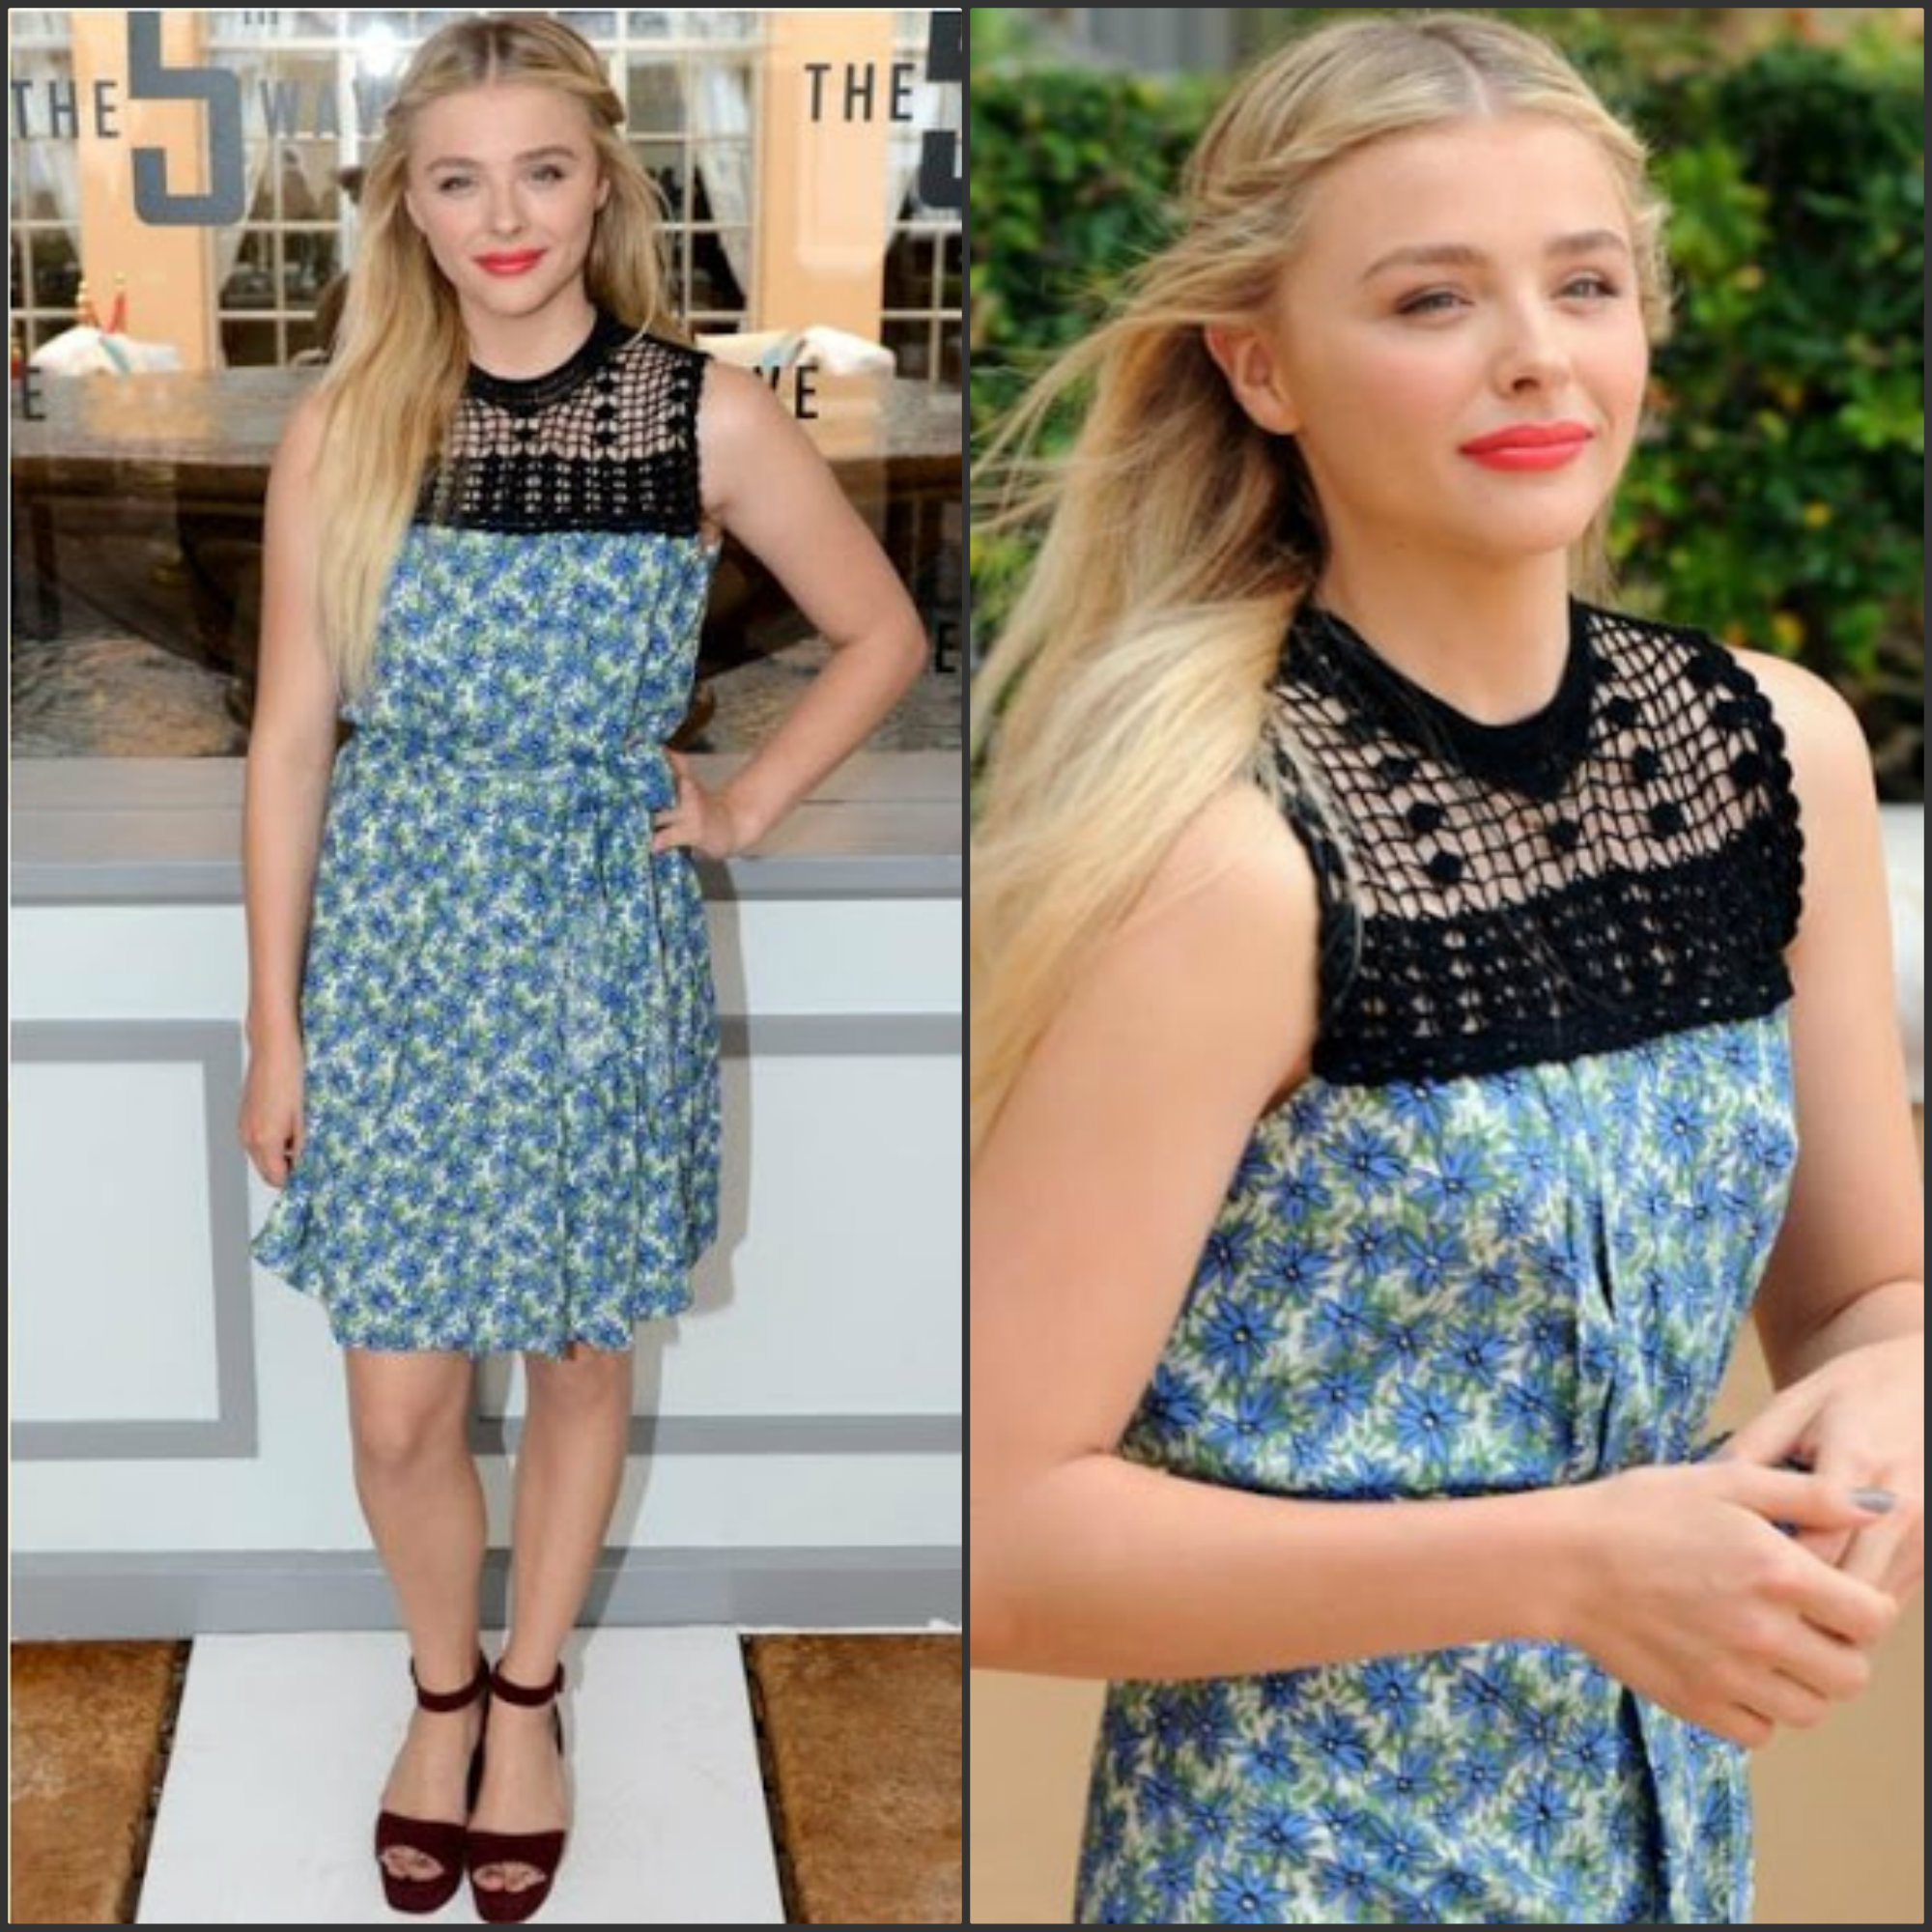 chloe-moretz-in-miu-miu-at-the-5th-wave-2015-summer-of-sony-pictures-entertainment-photocall